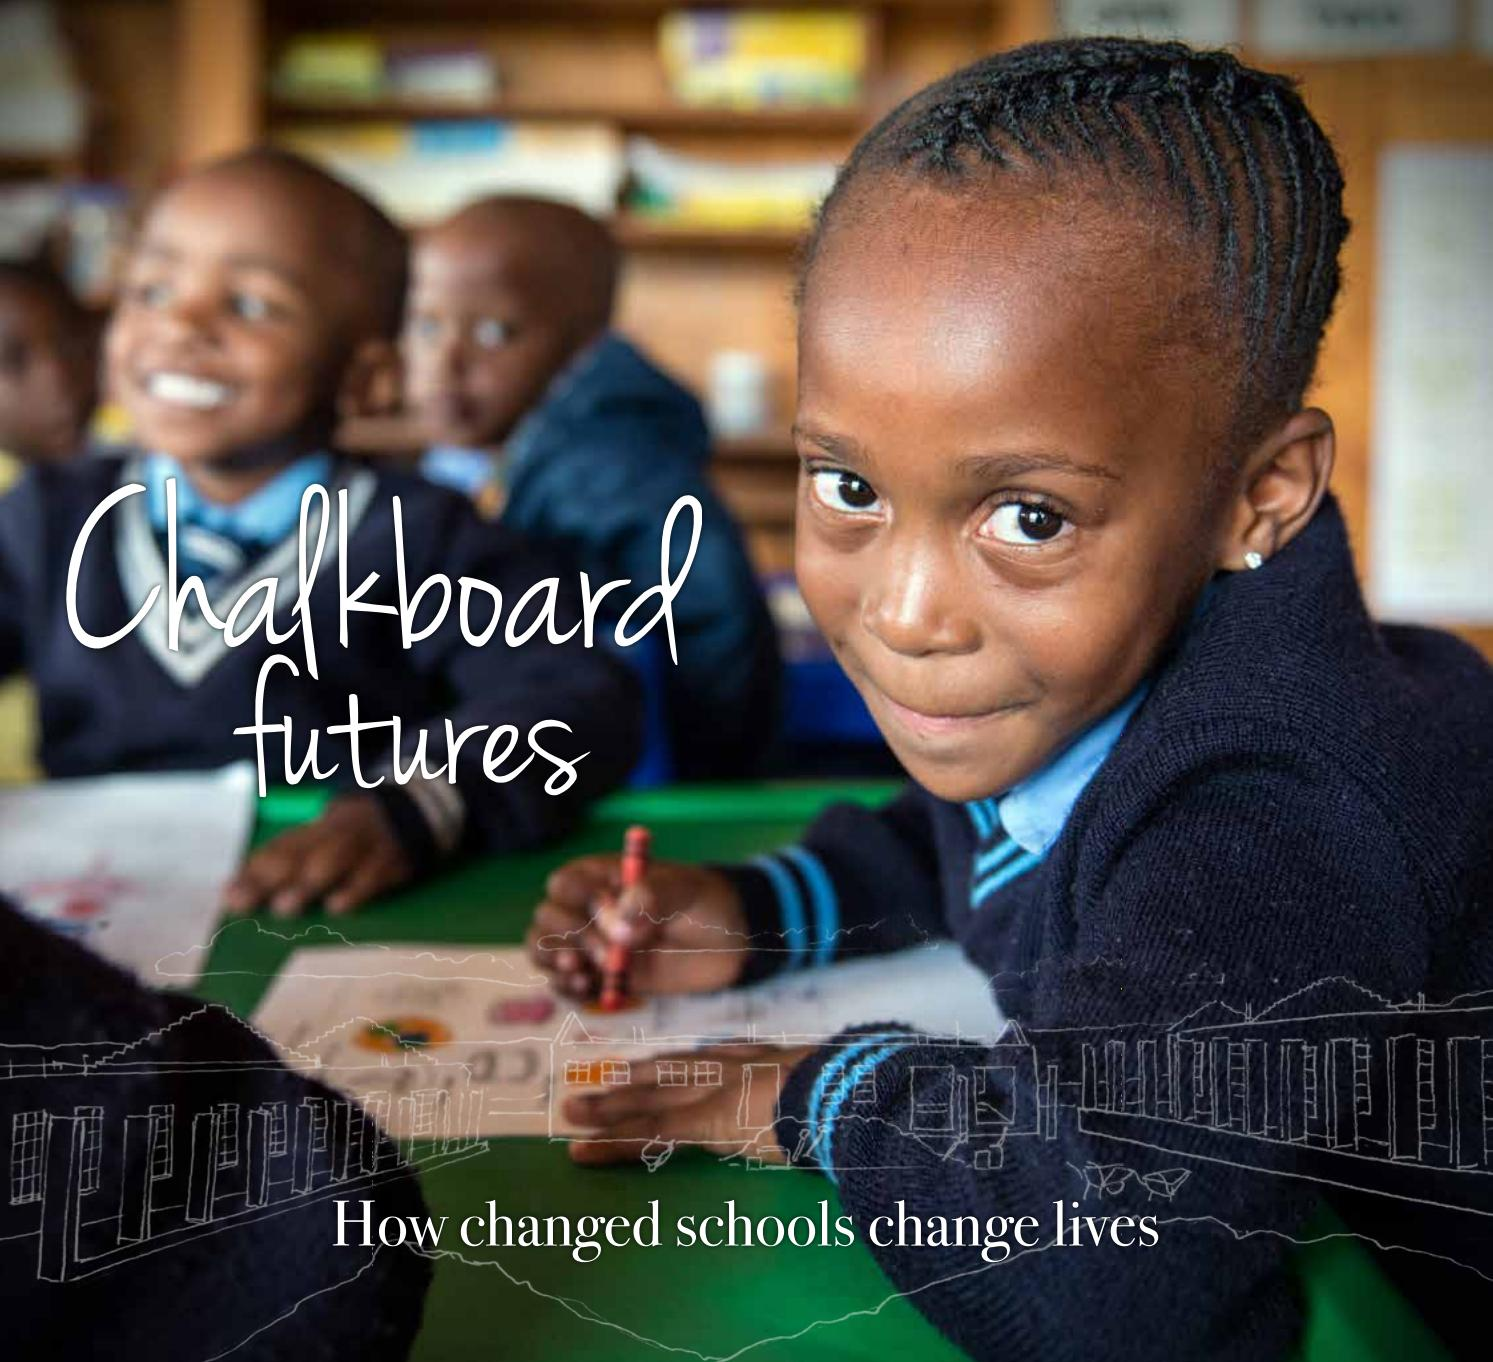 15ed8a6a8407a Chalkboard futures - How changed schools change lives by Cyril Ramaphosa  Foundation - issuu